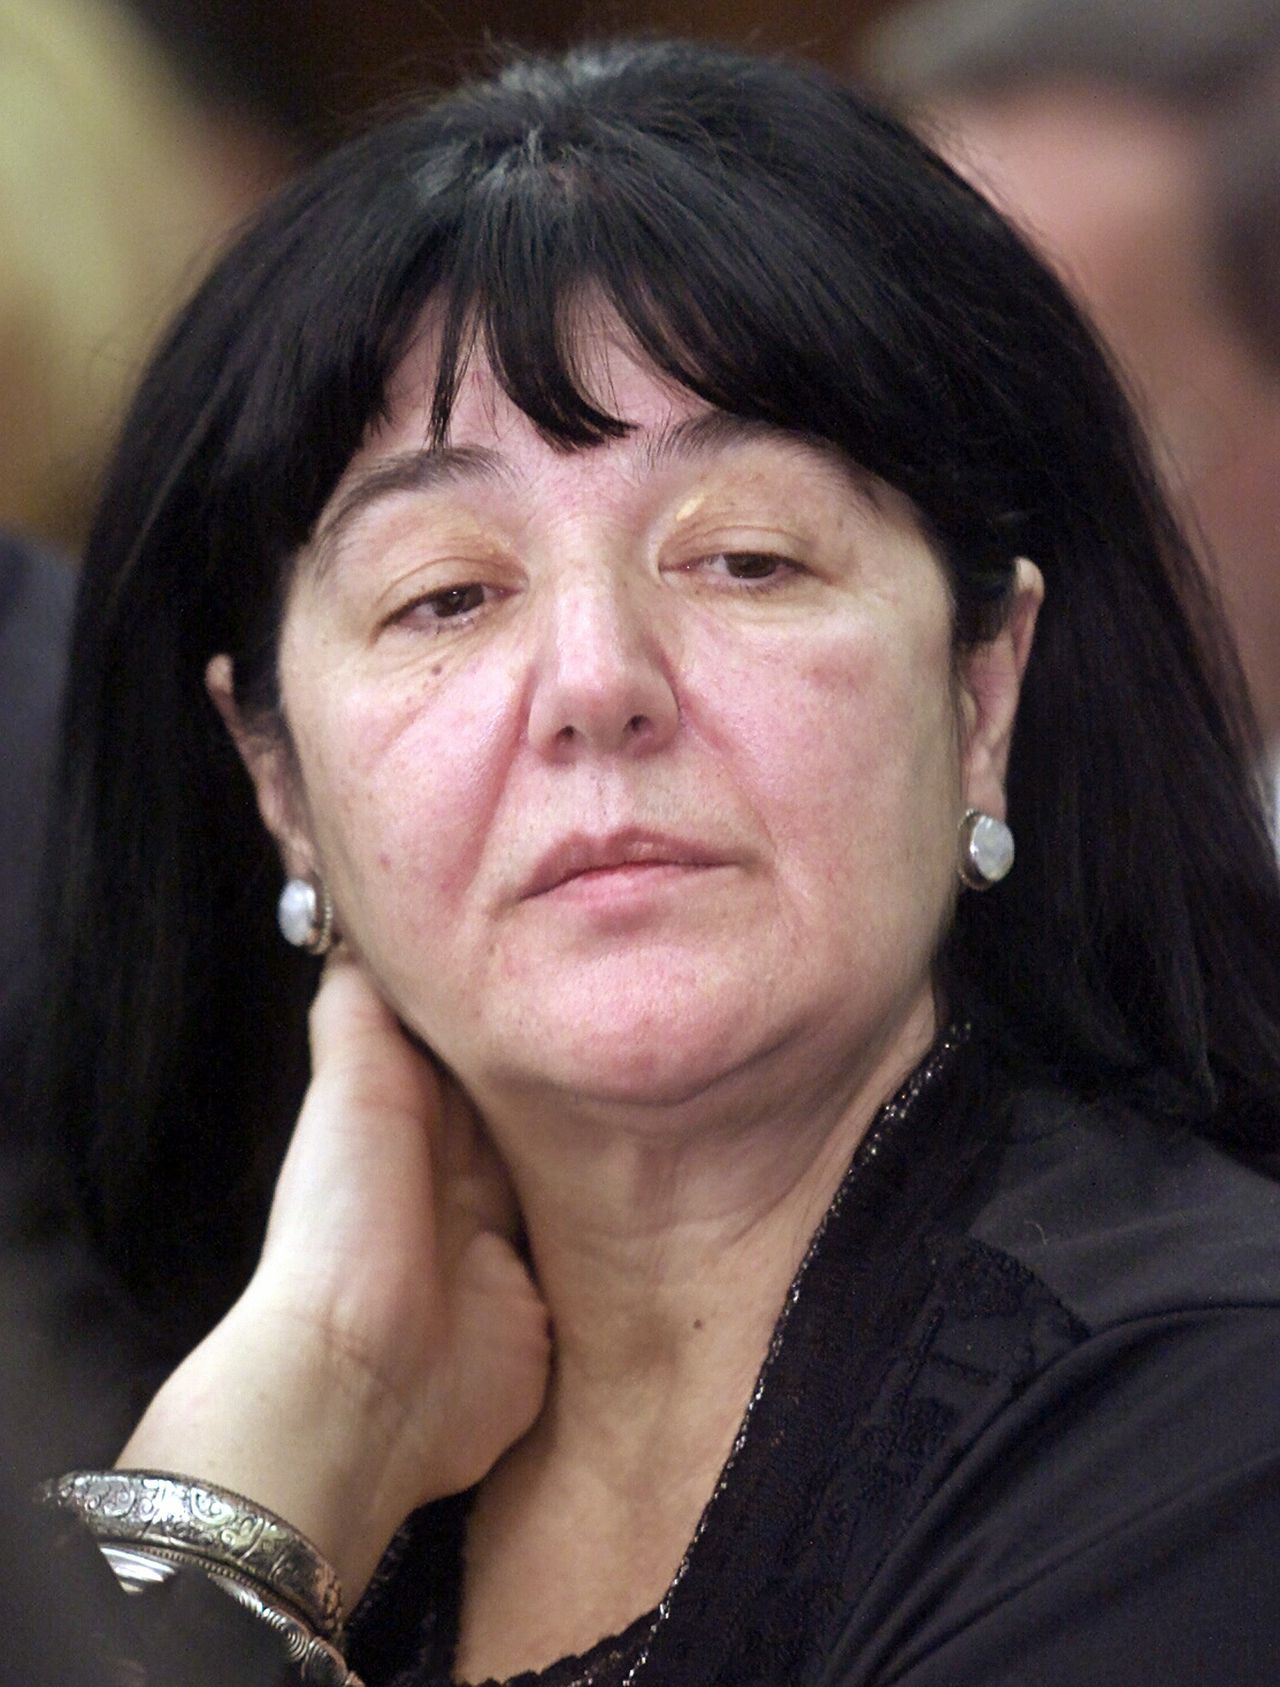 Mira Markovic Foto Reuters Mira Markovic, the widow of former Serb leader Slobodan Milosevic, attends the federal parliament session in Belgrade in this November 28, 2000 file photo. A Serb court dropped on March 14, 2006, an arrest warrant for the widow of Slobodan Milosevic, an official of Milosevic's party said, in a move that could allow her to attend his funeral if he is buried in Serbia. REUTERS/Ivan Milutinovic/Files